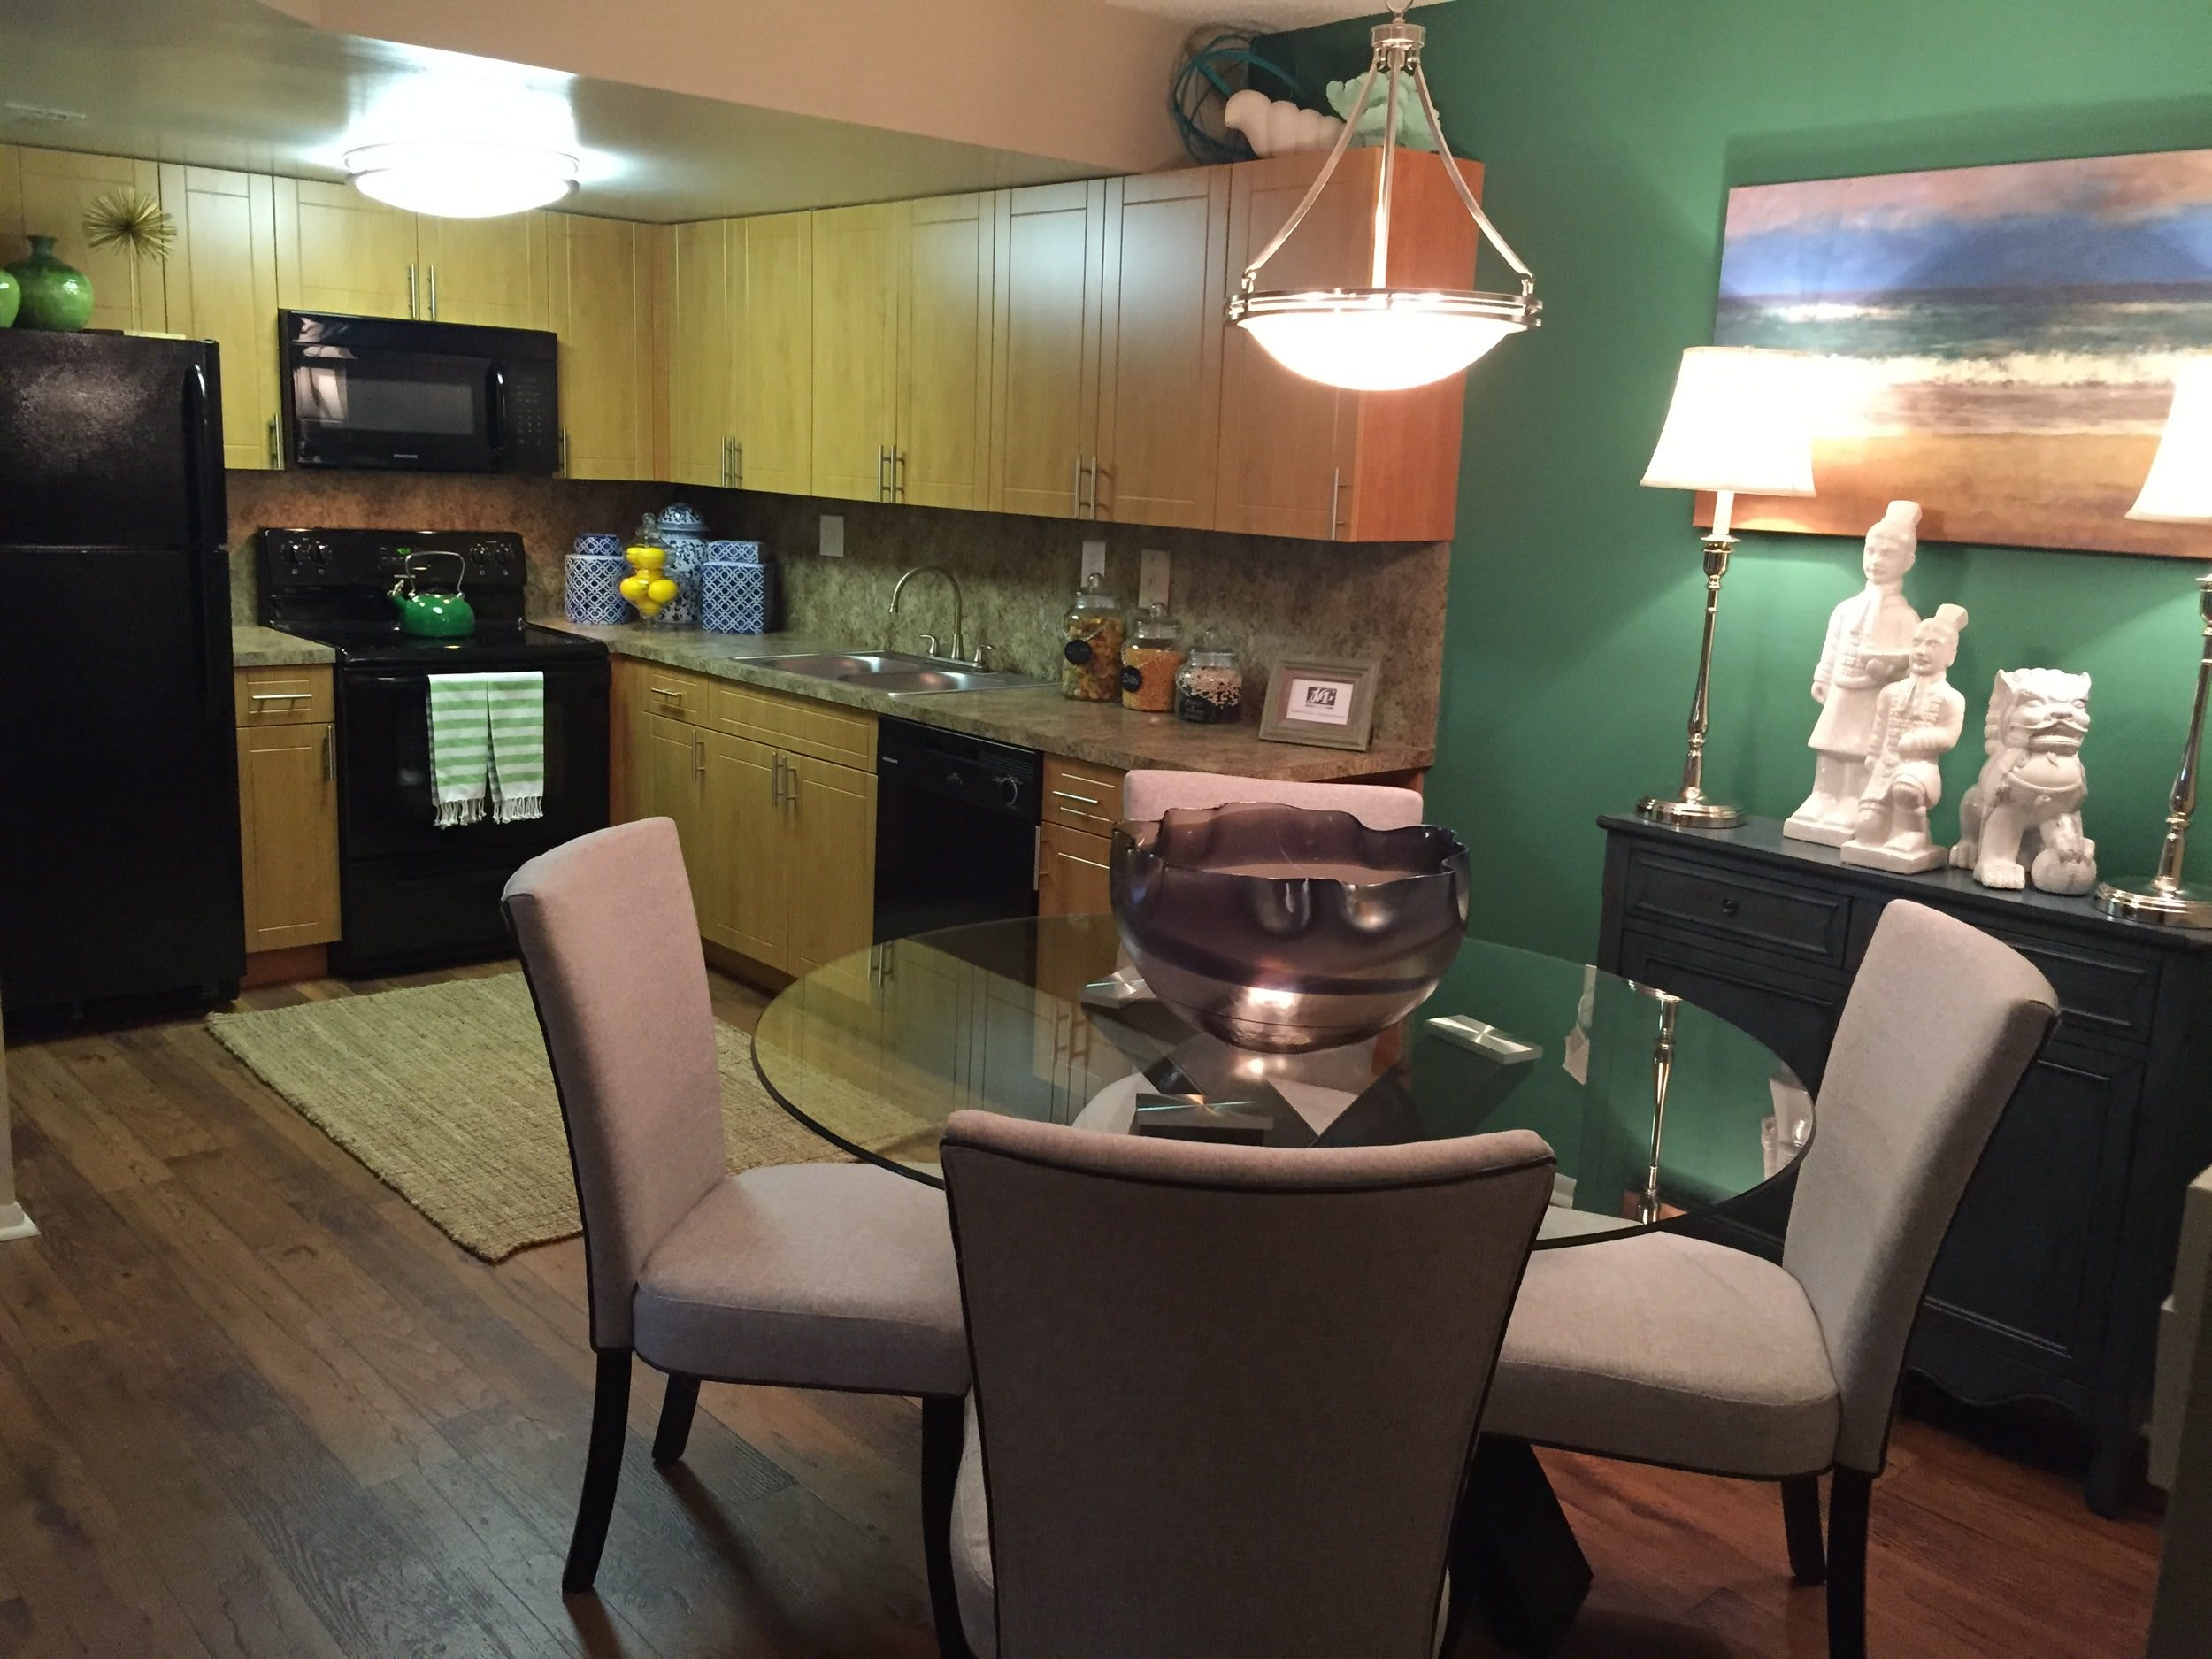 Dining Room at Fairway View Apartments in Hialeah, Florida